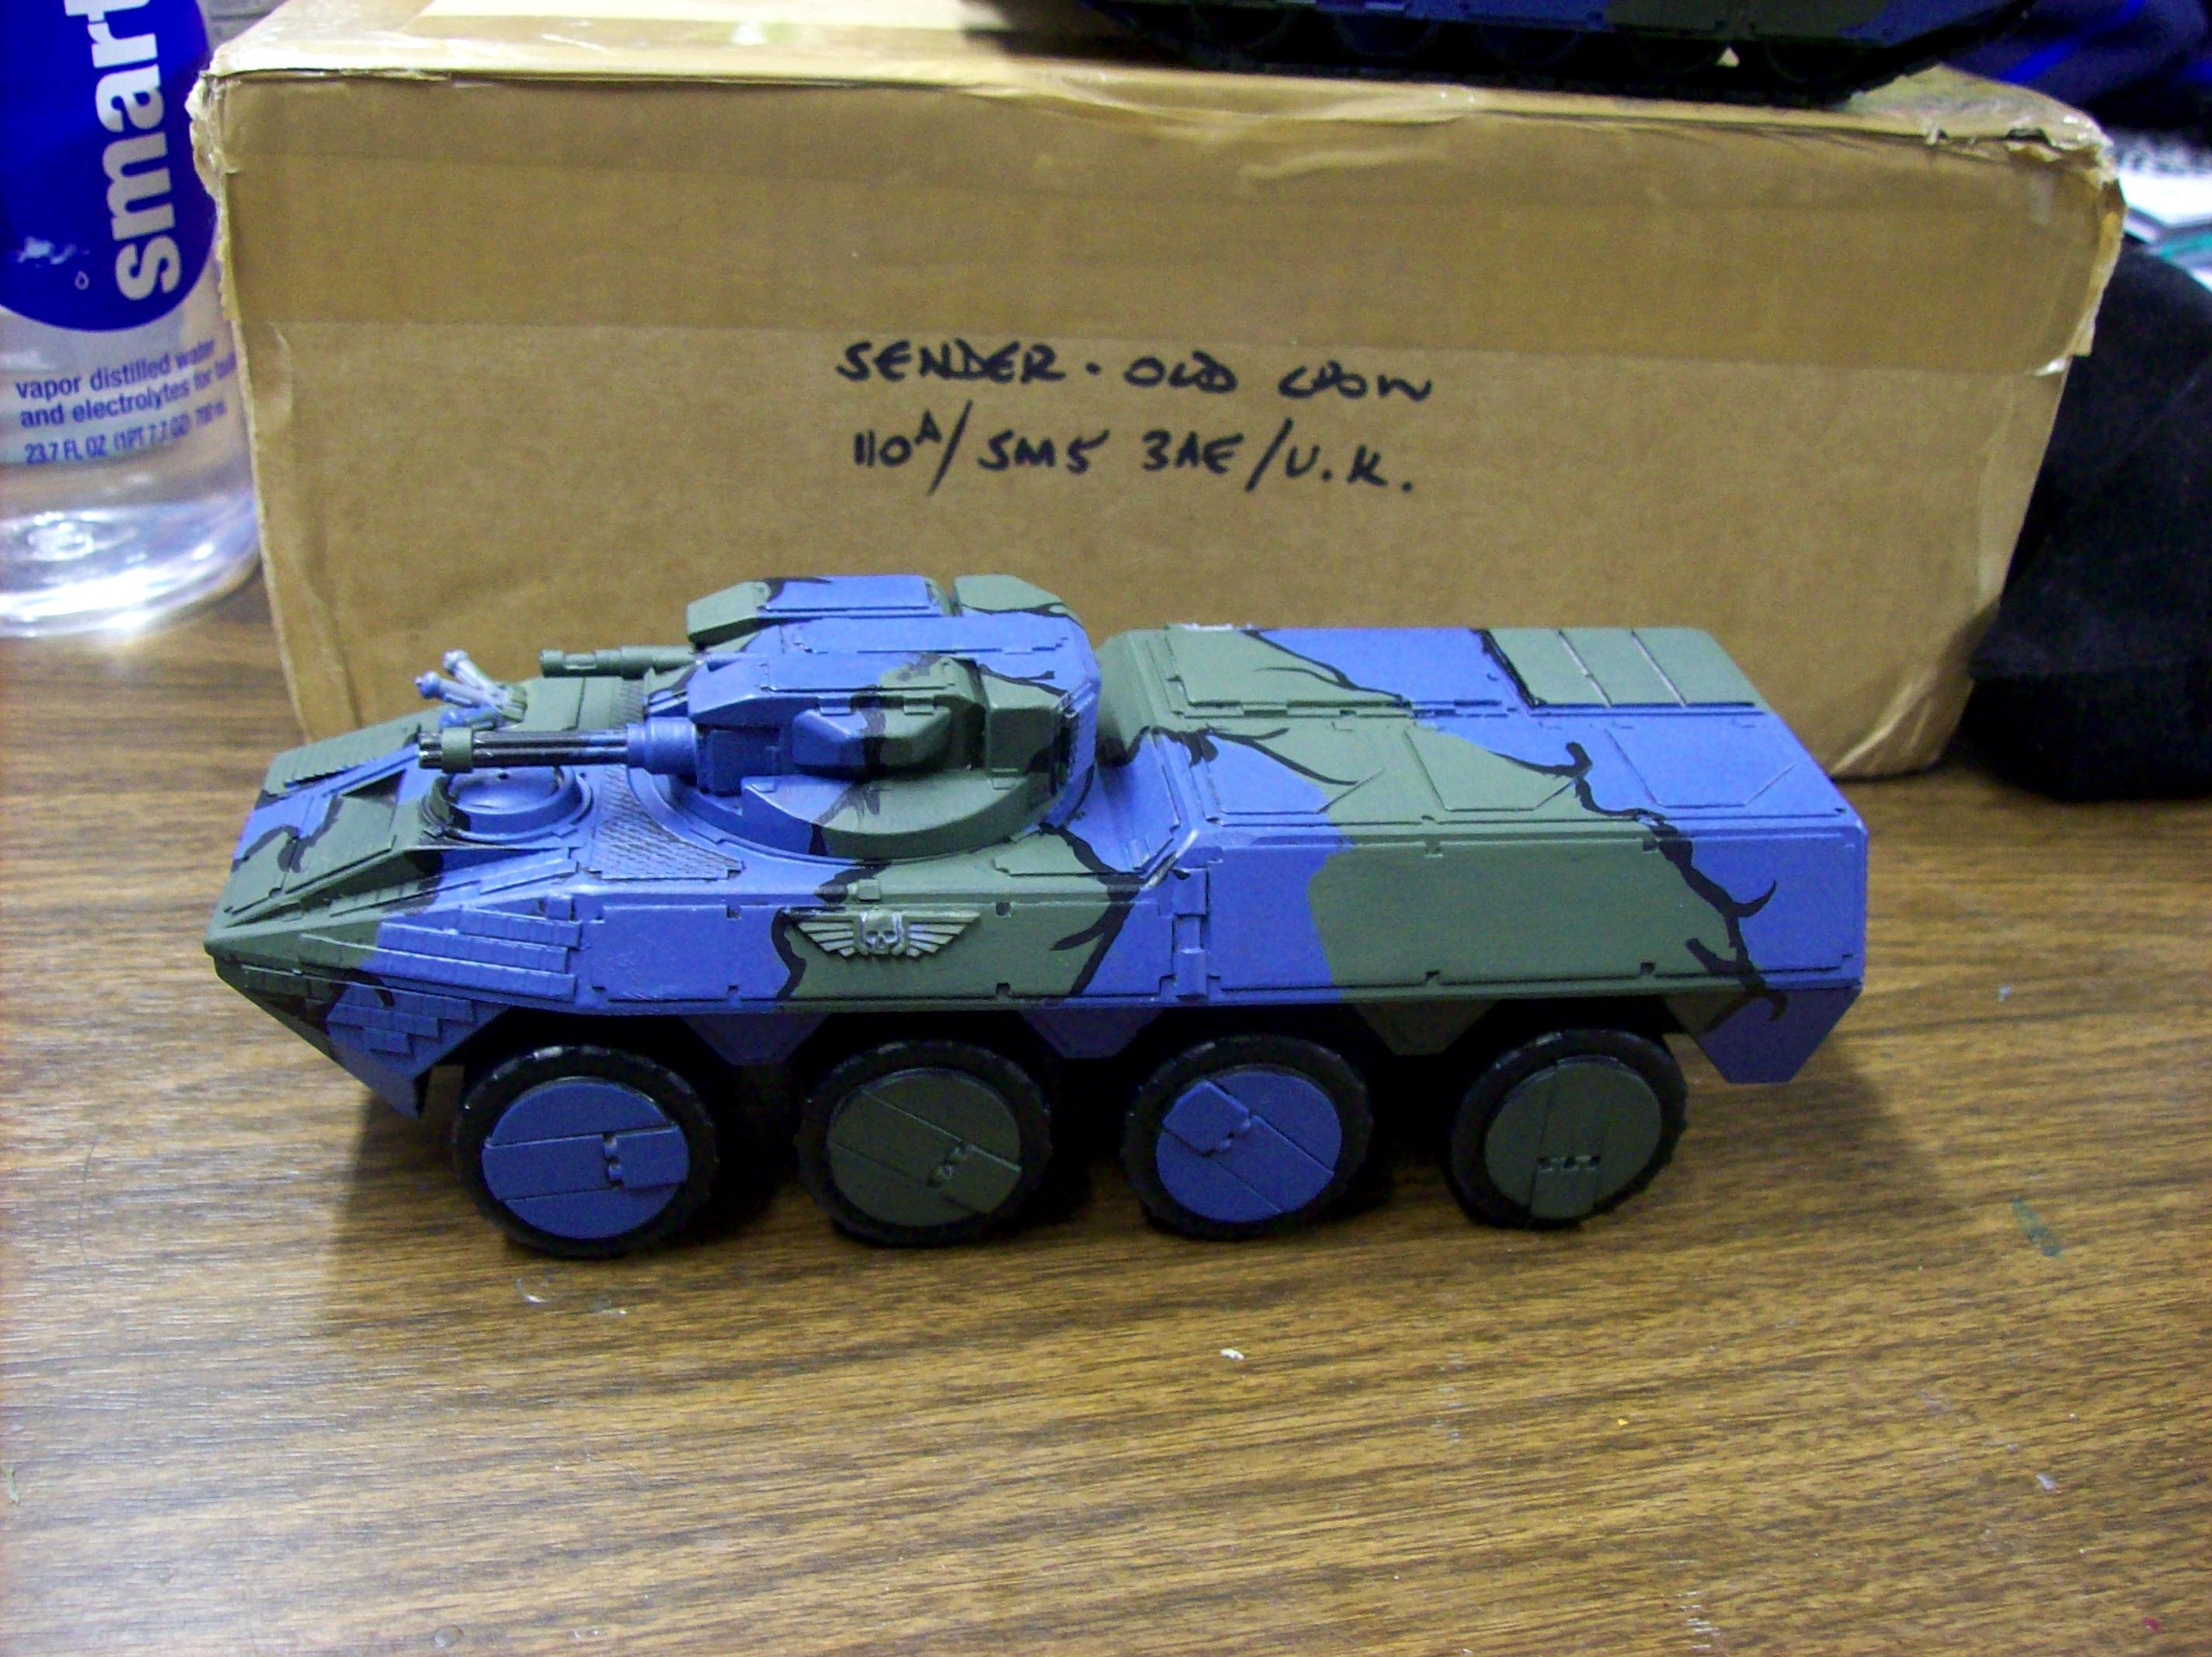 Imperial Guard, Transport